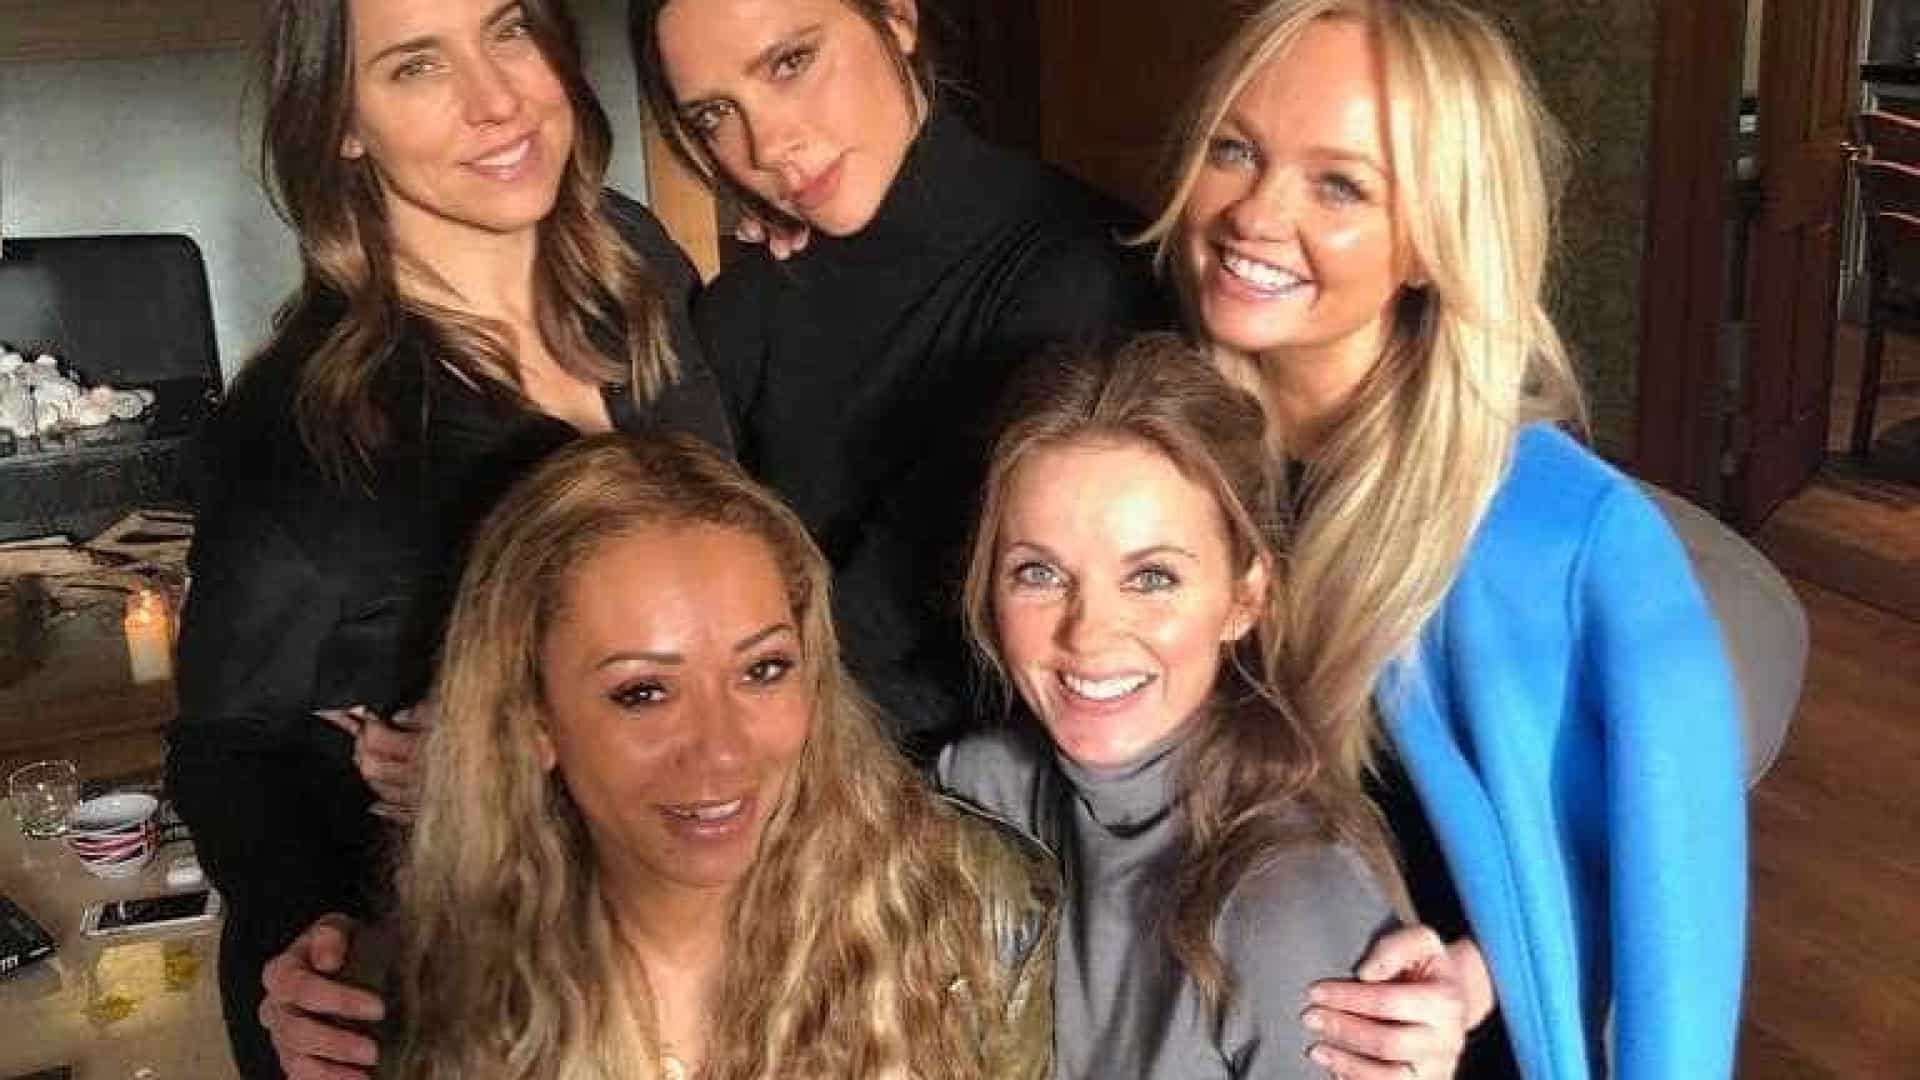 Integrantes do Spice Girls se encontram para decidir retorno do grupo